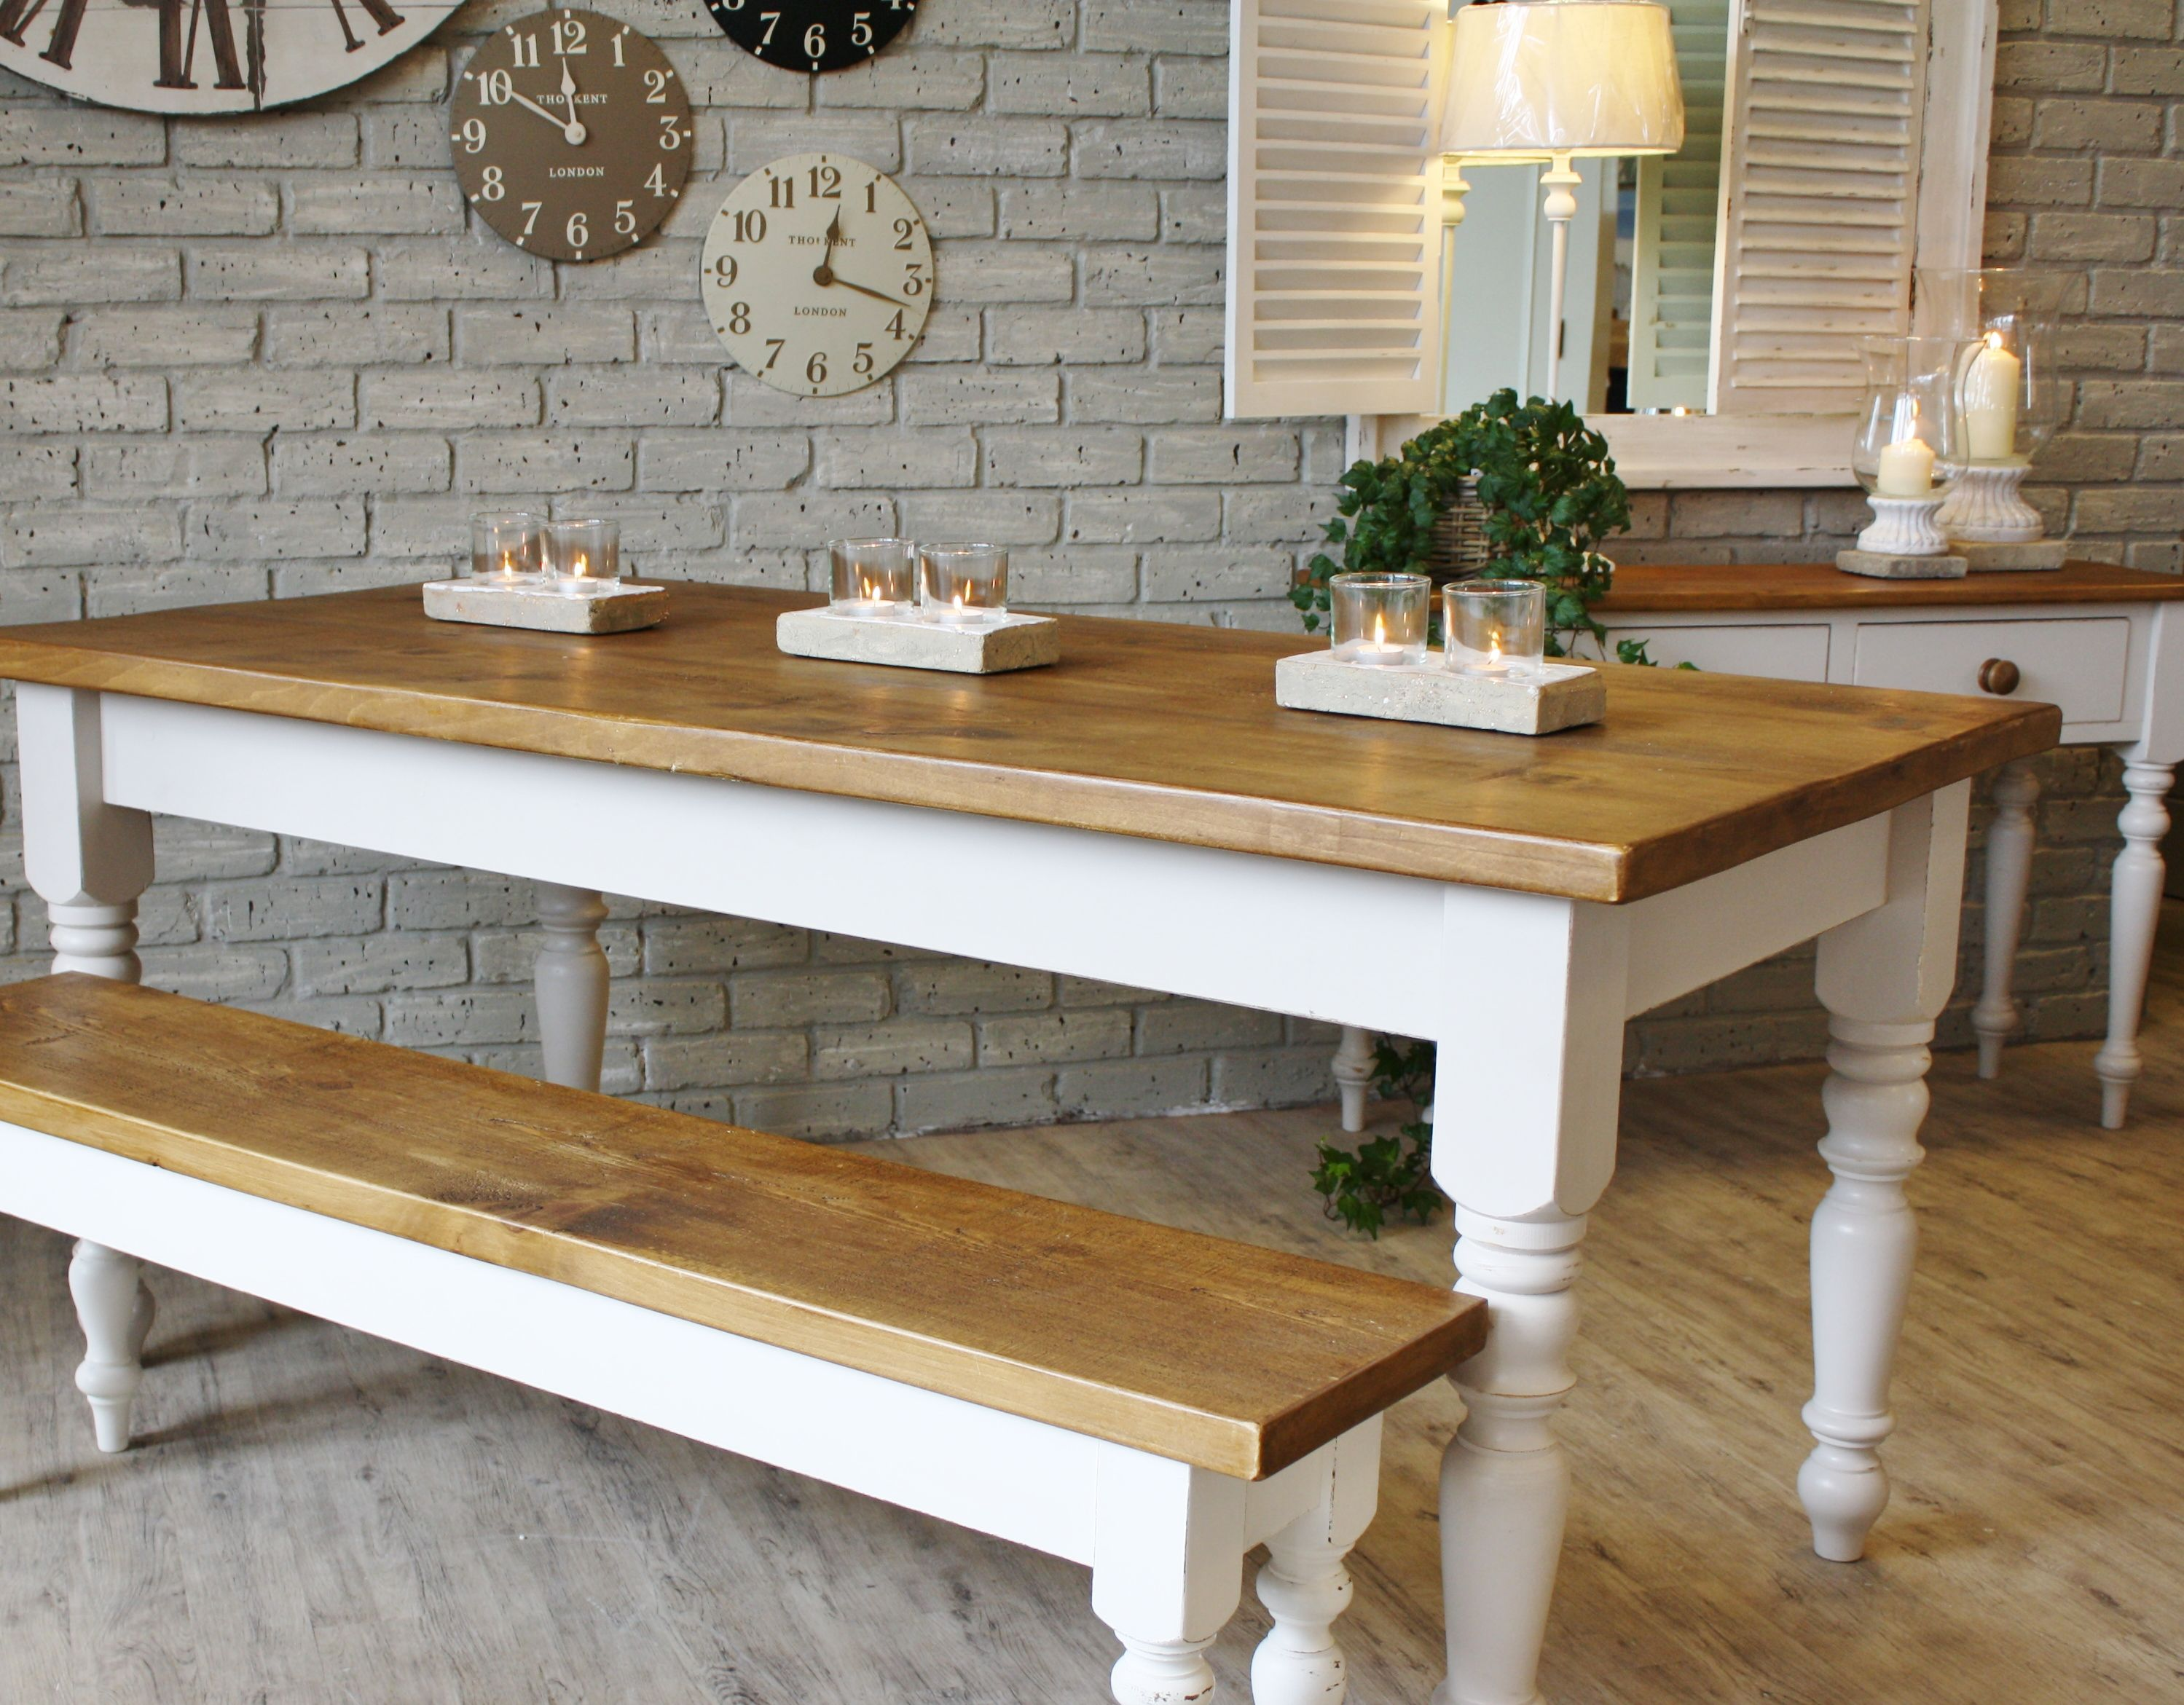 bench for kitchen table white and cream farmhouse White Cream Farmhouse Wooden Kitchen Tables with Candle Holders